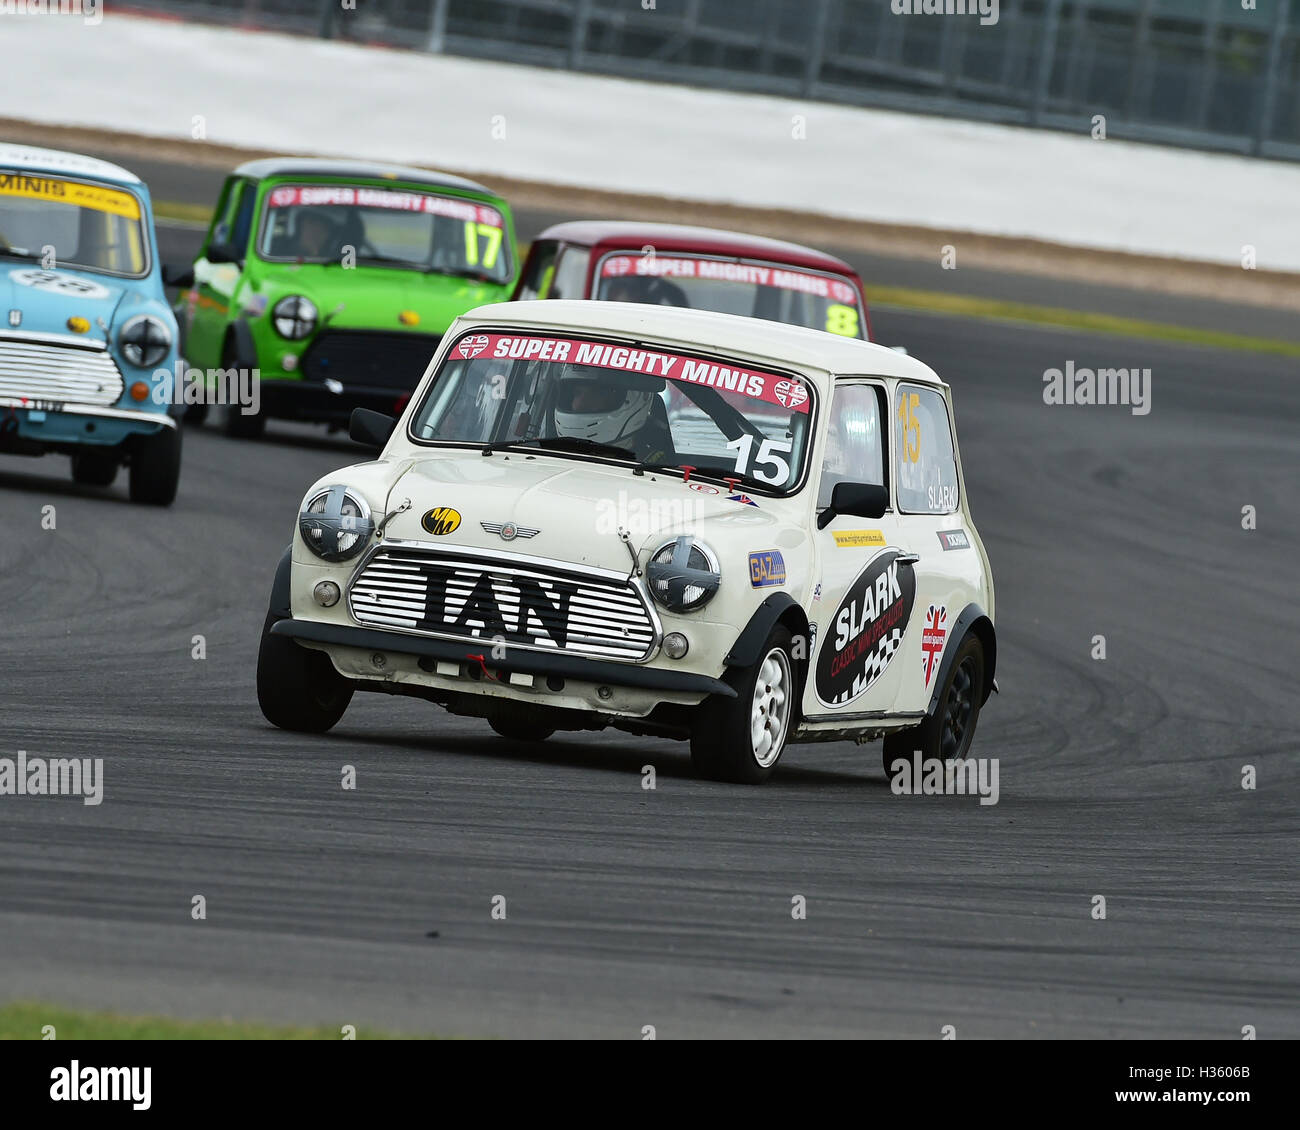 Ian Slark, Super Mighty Mini, 1293, Mighty Mini Championship, Saturday, Silverstone, Silverstone truck festival, - Stock Image